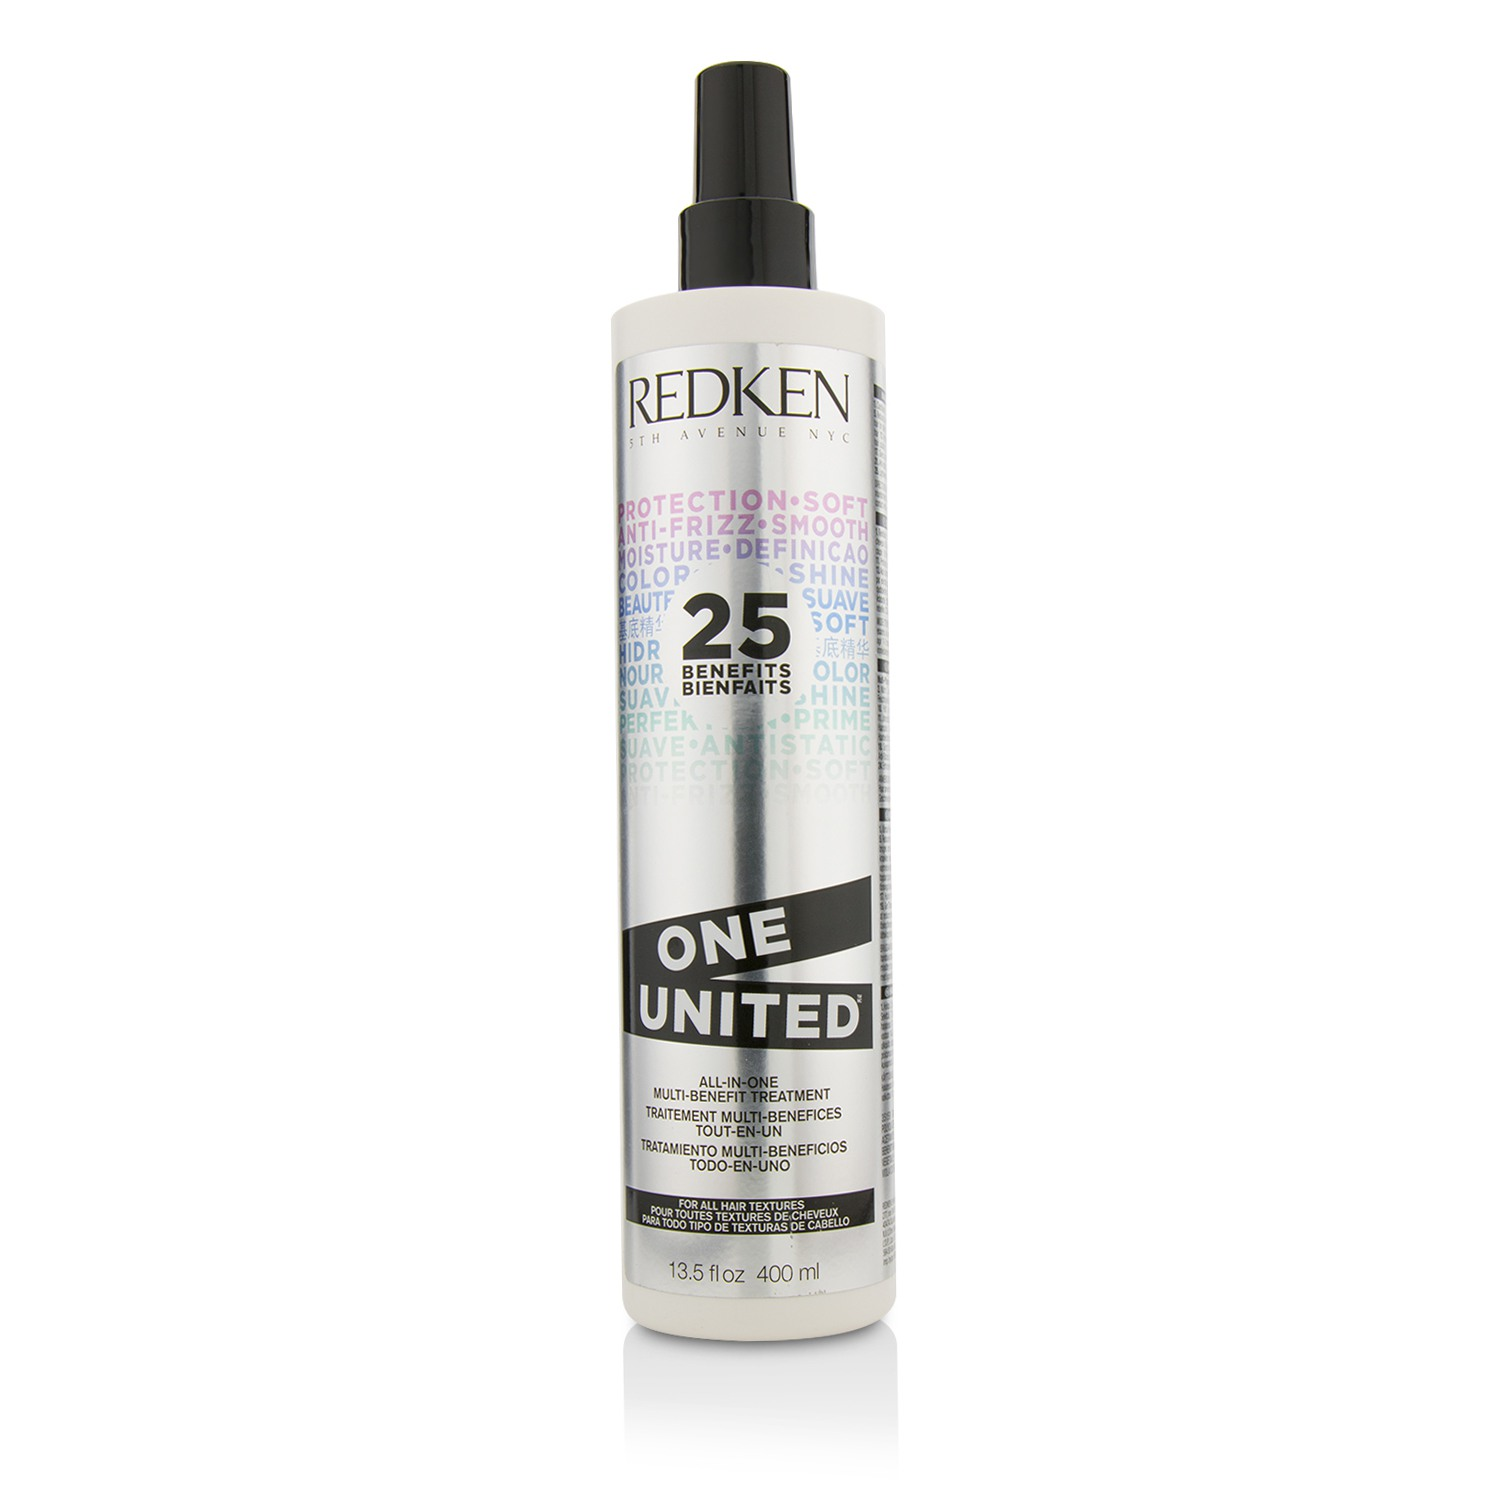 One United All-In-One Multi-Benefit Treatment (For All Hair Textures) Redken Image